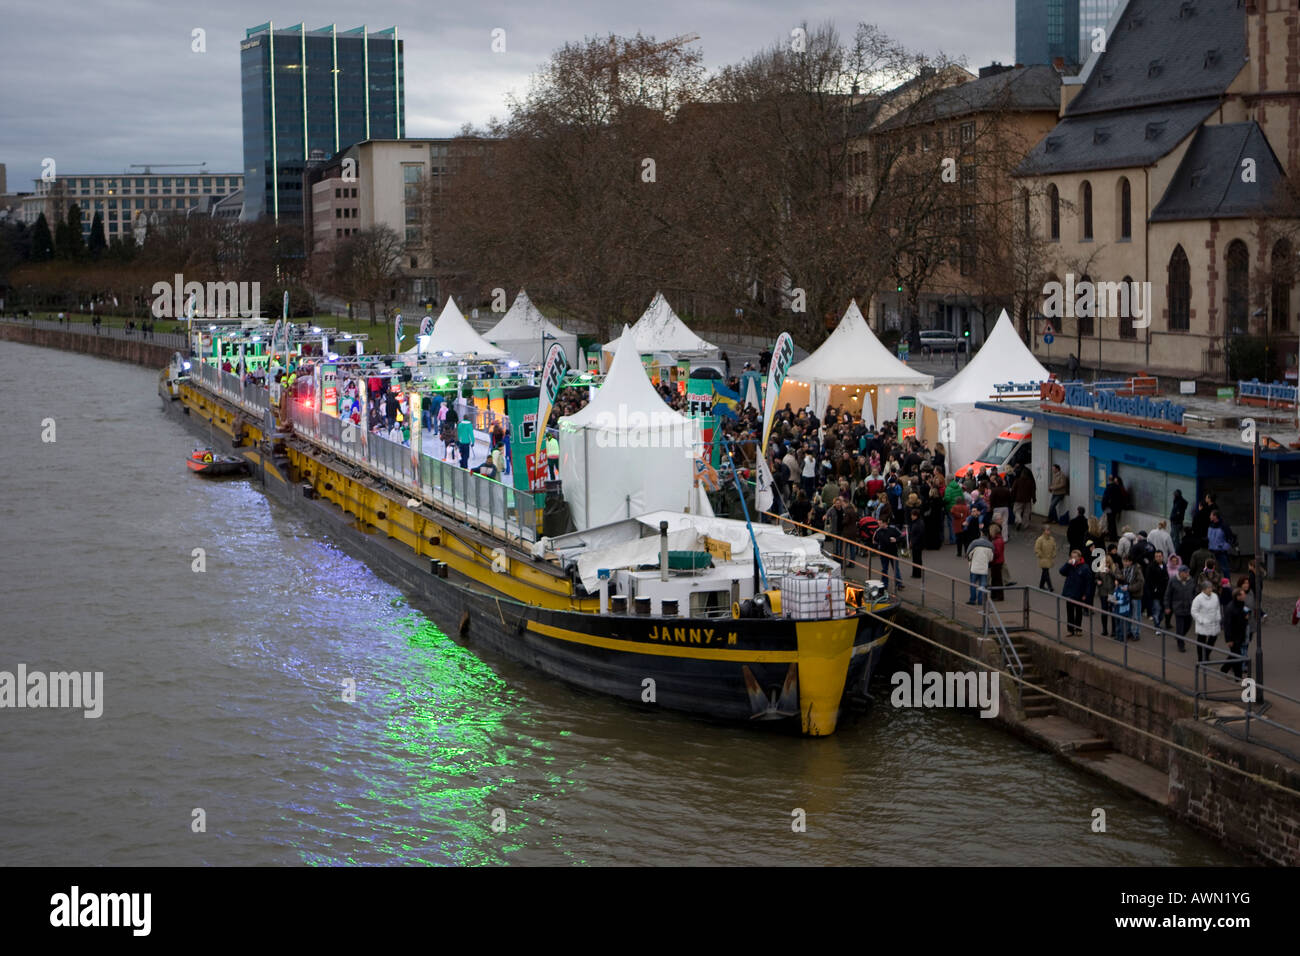 Ship with skating rink on deck anchored in Frankfurt, Hesse, Germany, Europe - Stock Image